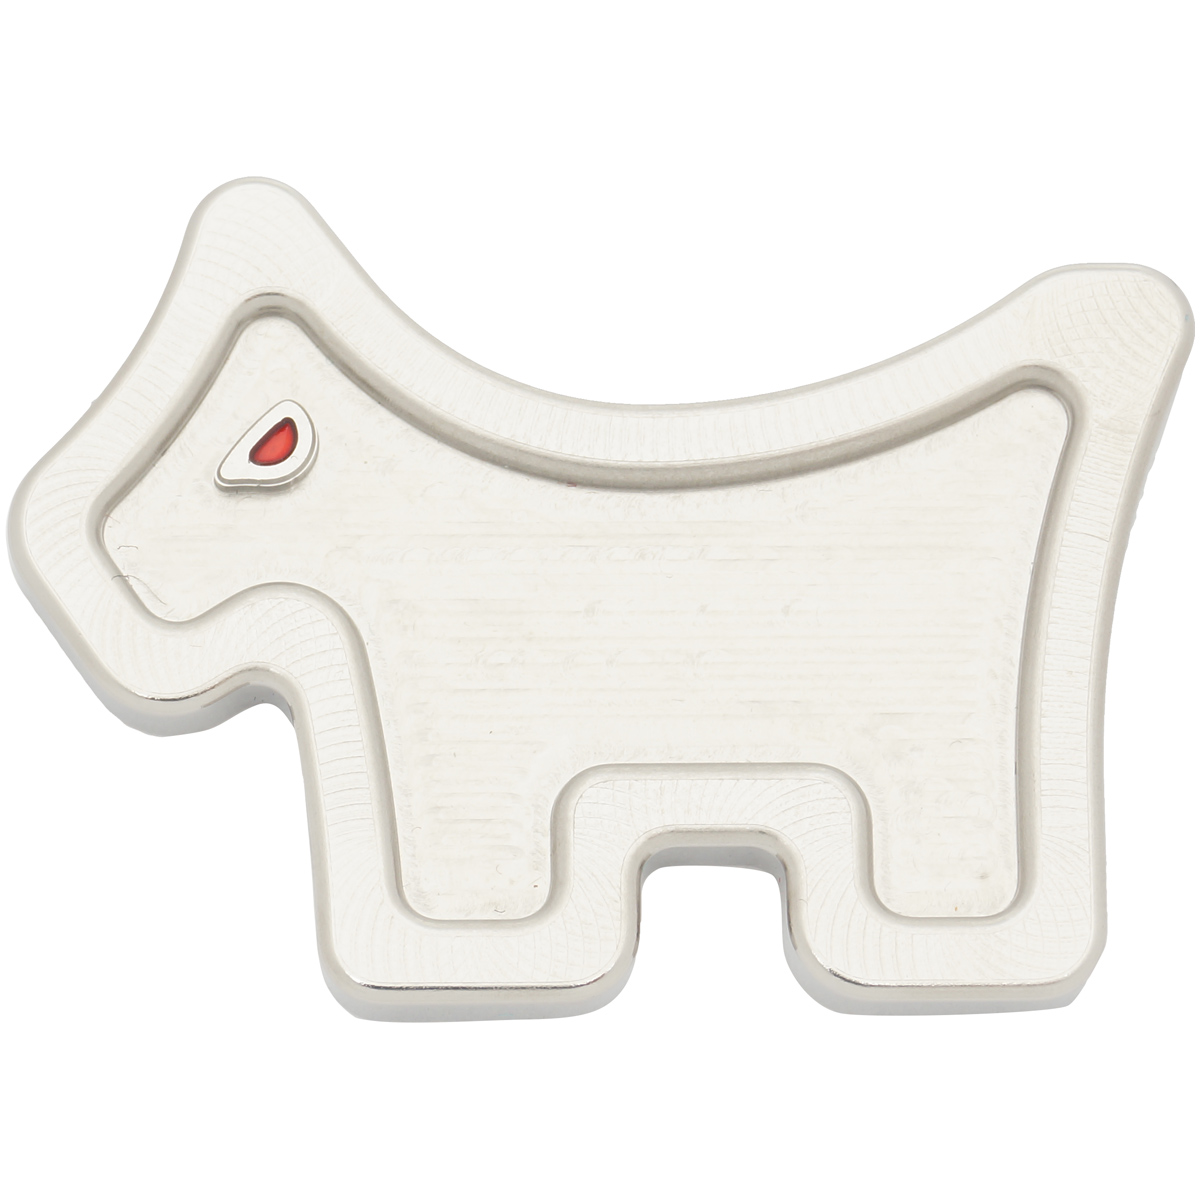 COOKIE CUTTER DOG SMALL BALL マーカー